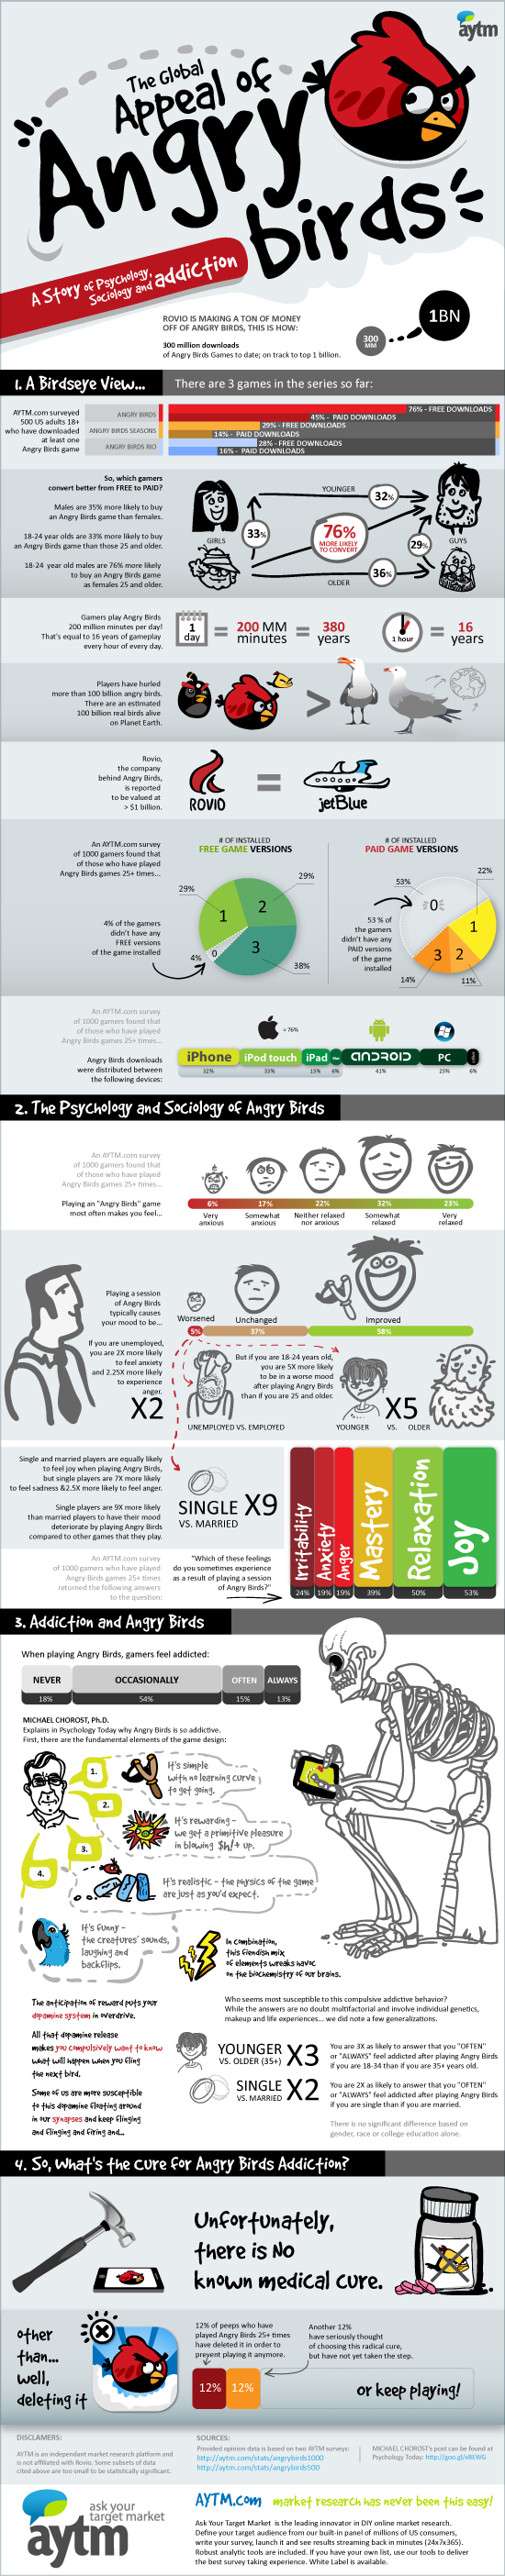 angrybirds infographic 2 550pix2 Still Addicted to Angry Birds?